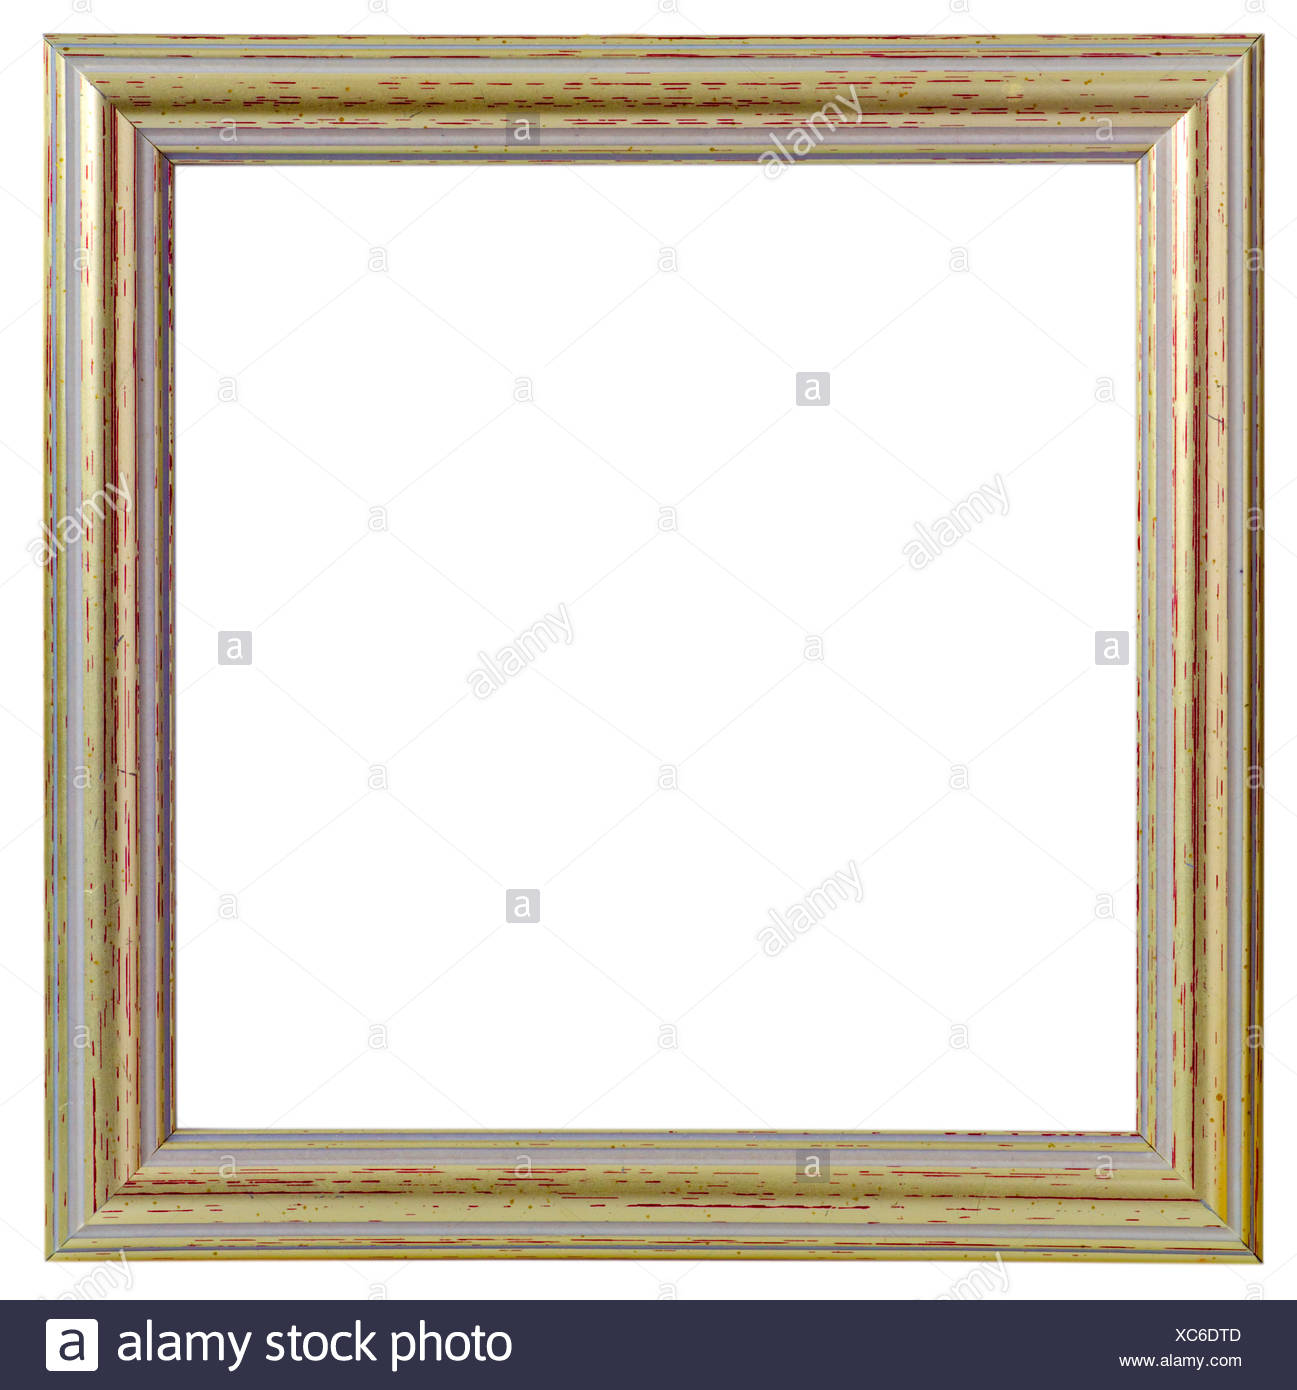 Kunstwerk Cut Out Stock Images & Pictures - Alamy